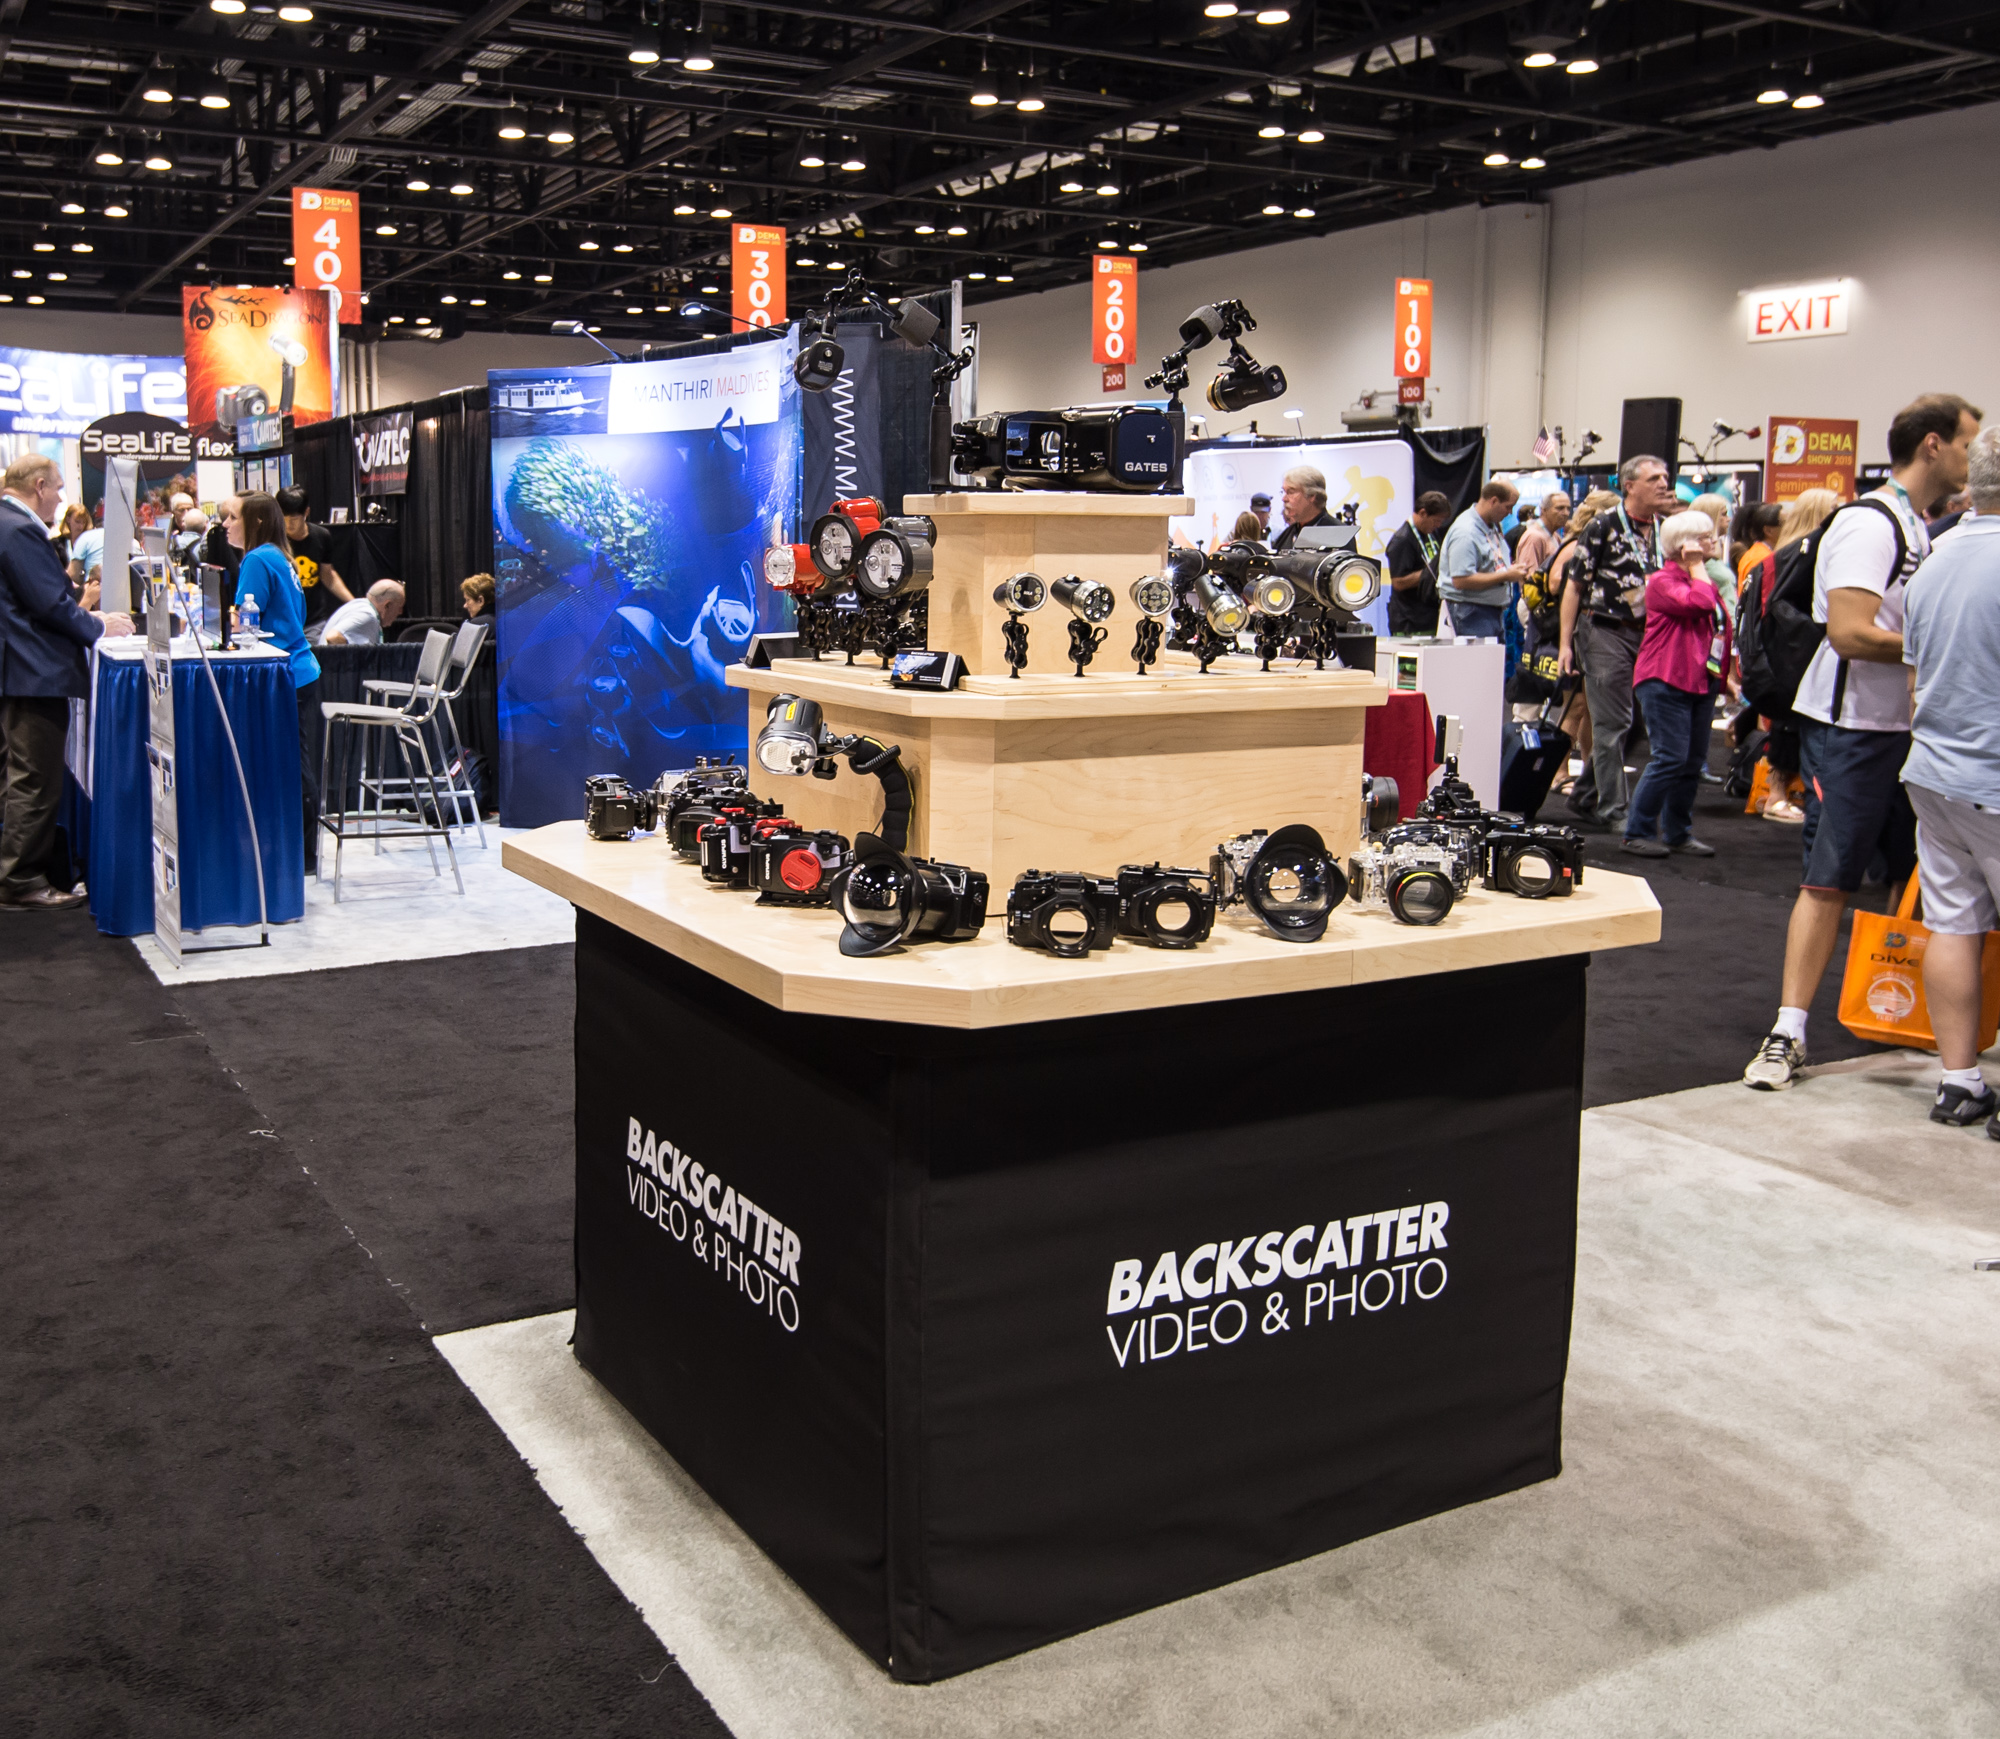 As always, Backscatter had a big presence at the show